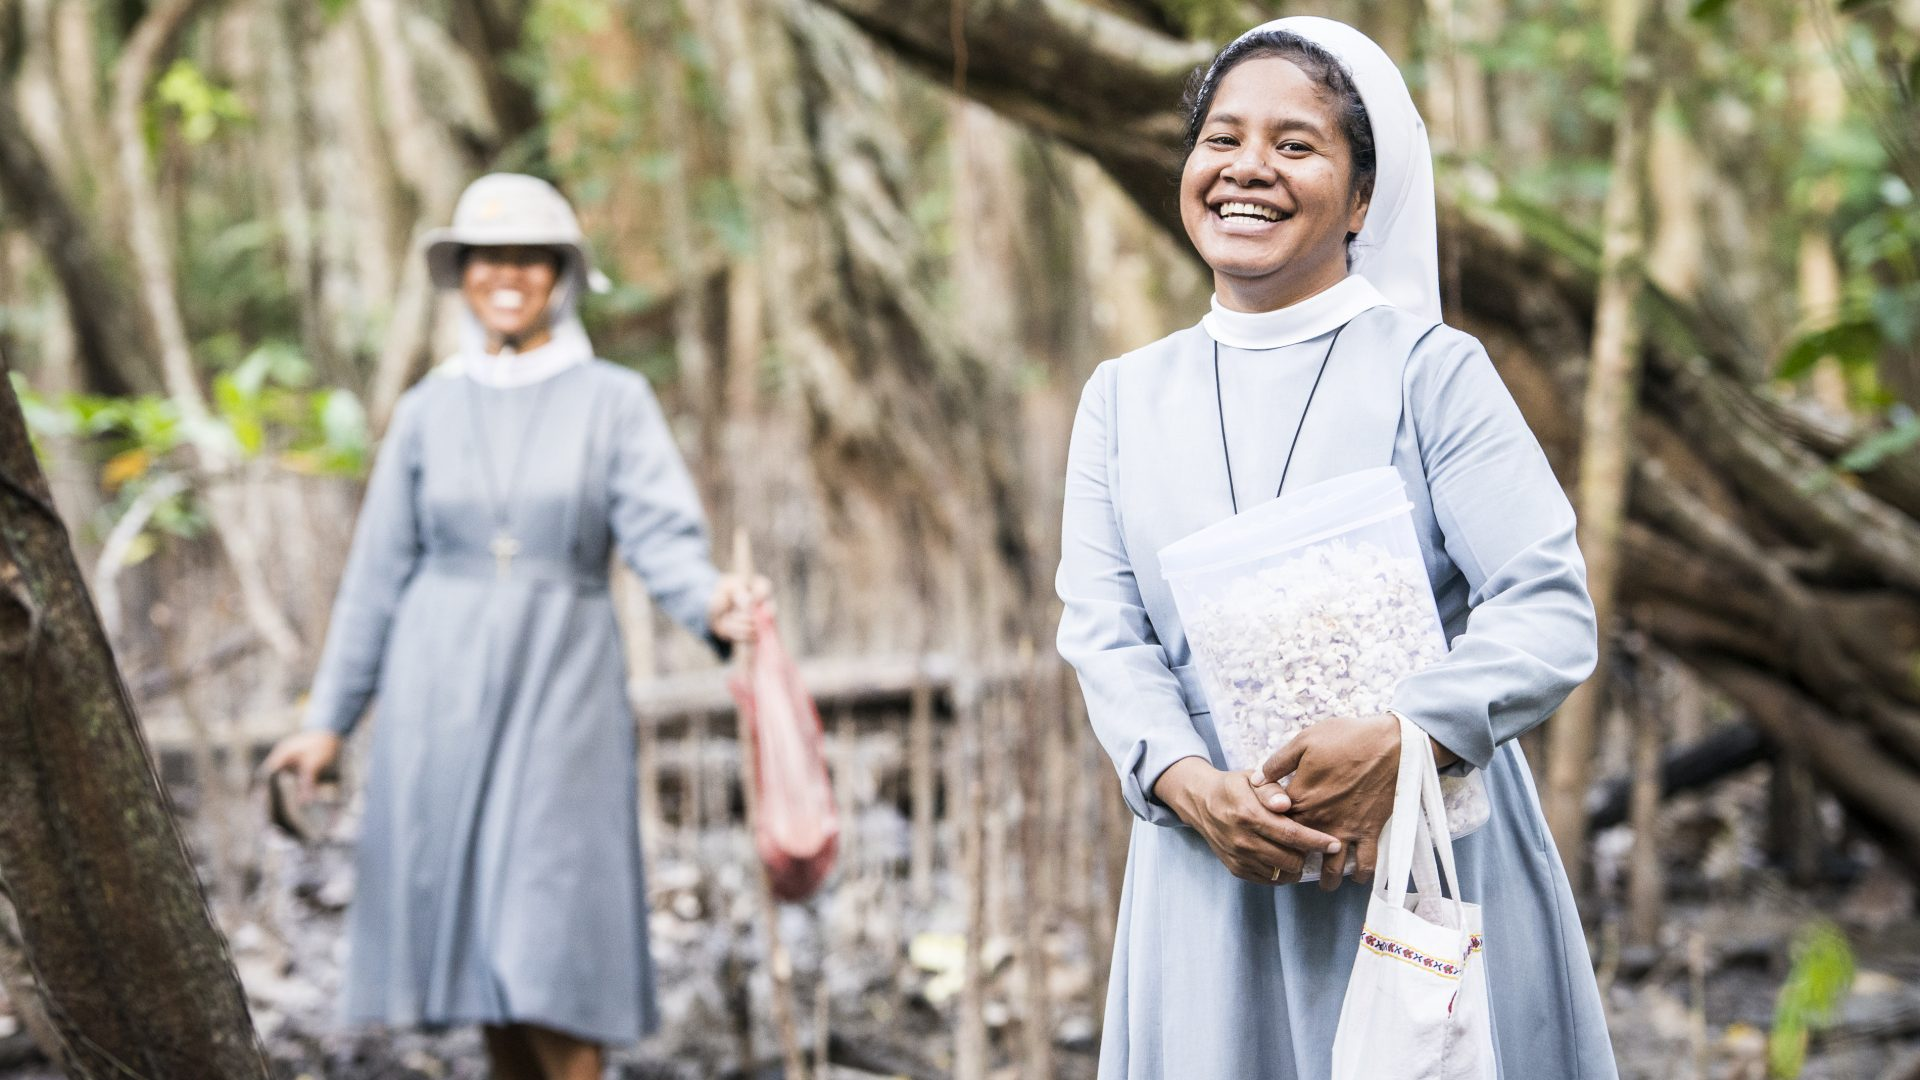 Responsible photography: Nuns from East Timor have a laugh while standing in a swamp, carrying popcorn.